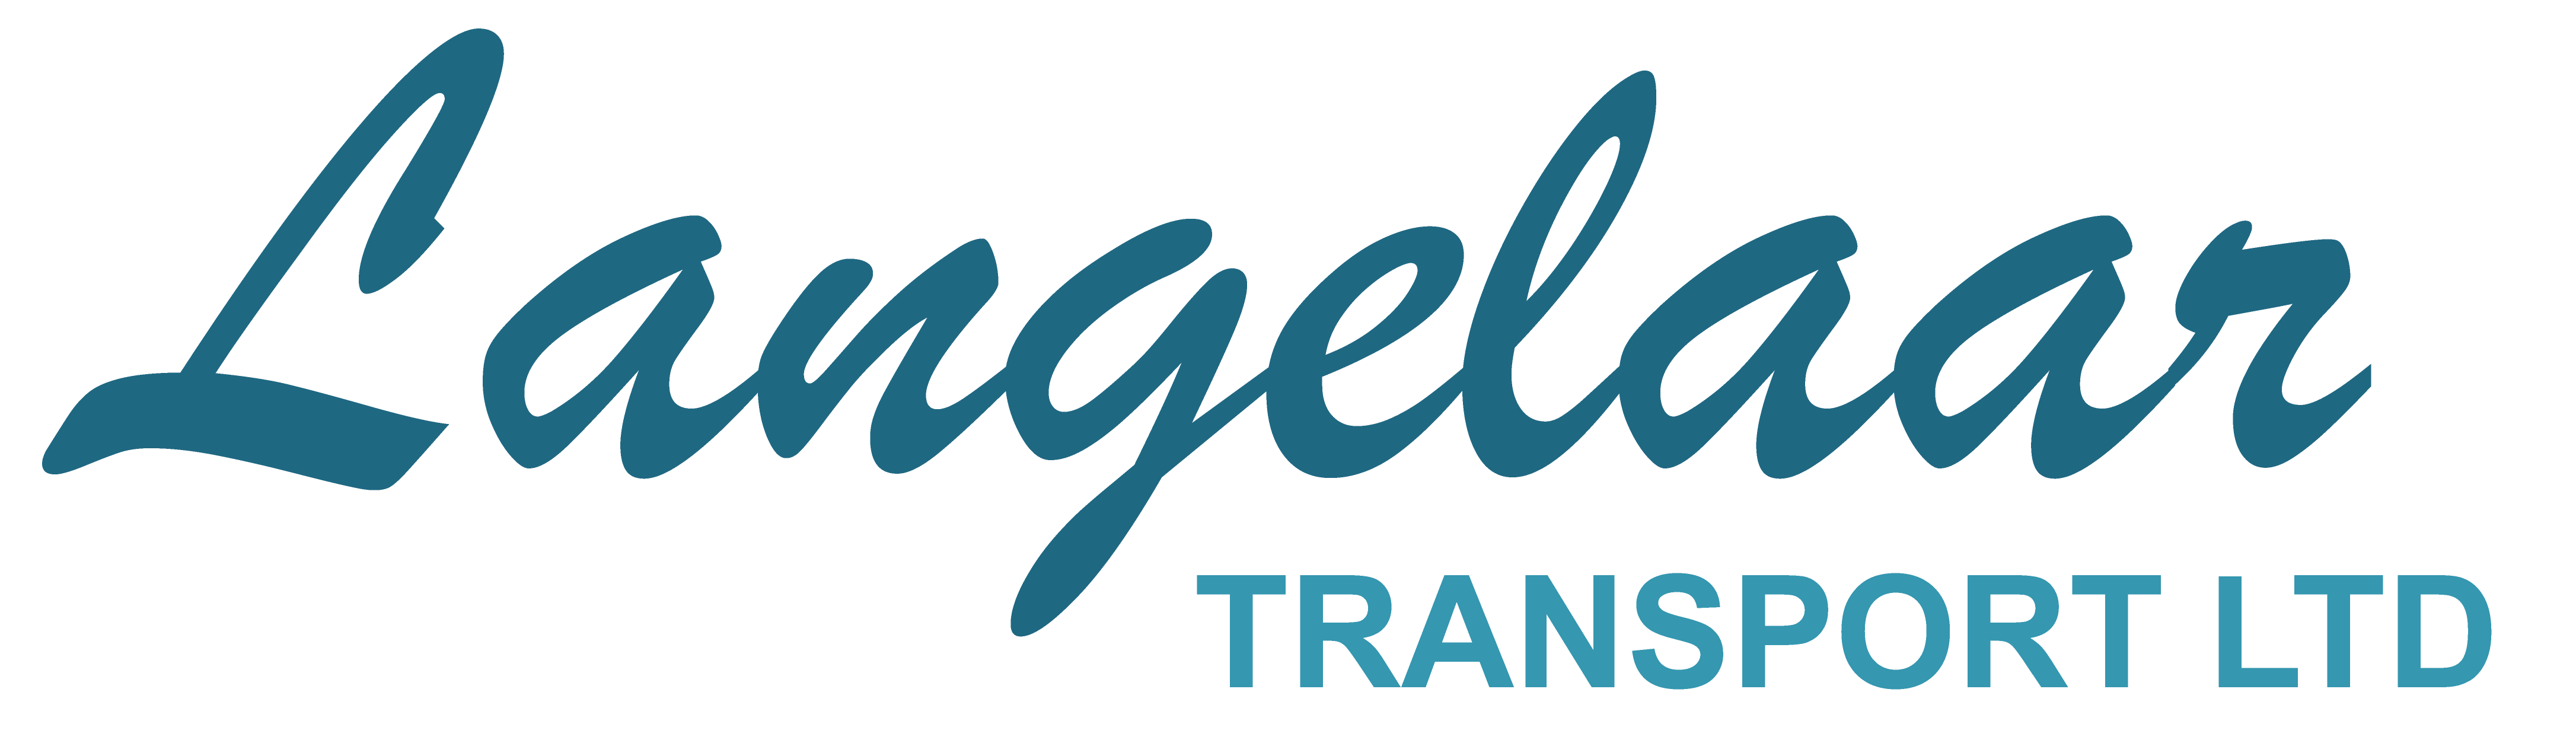 Langelaar Transport Ltd